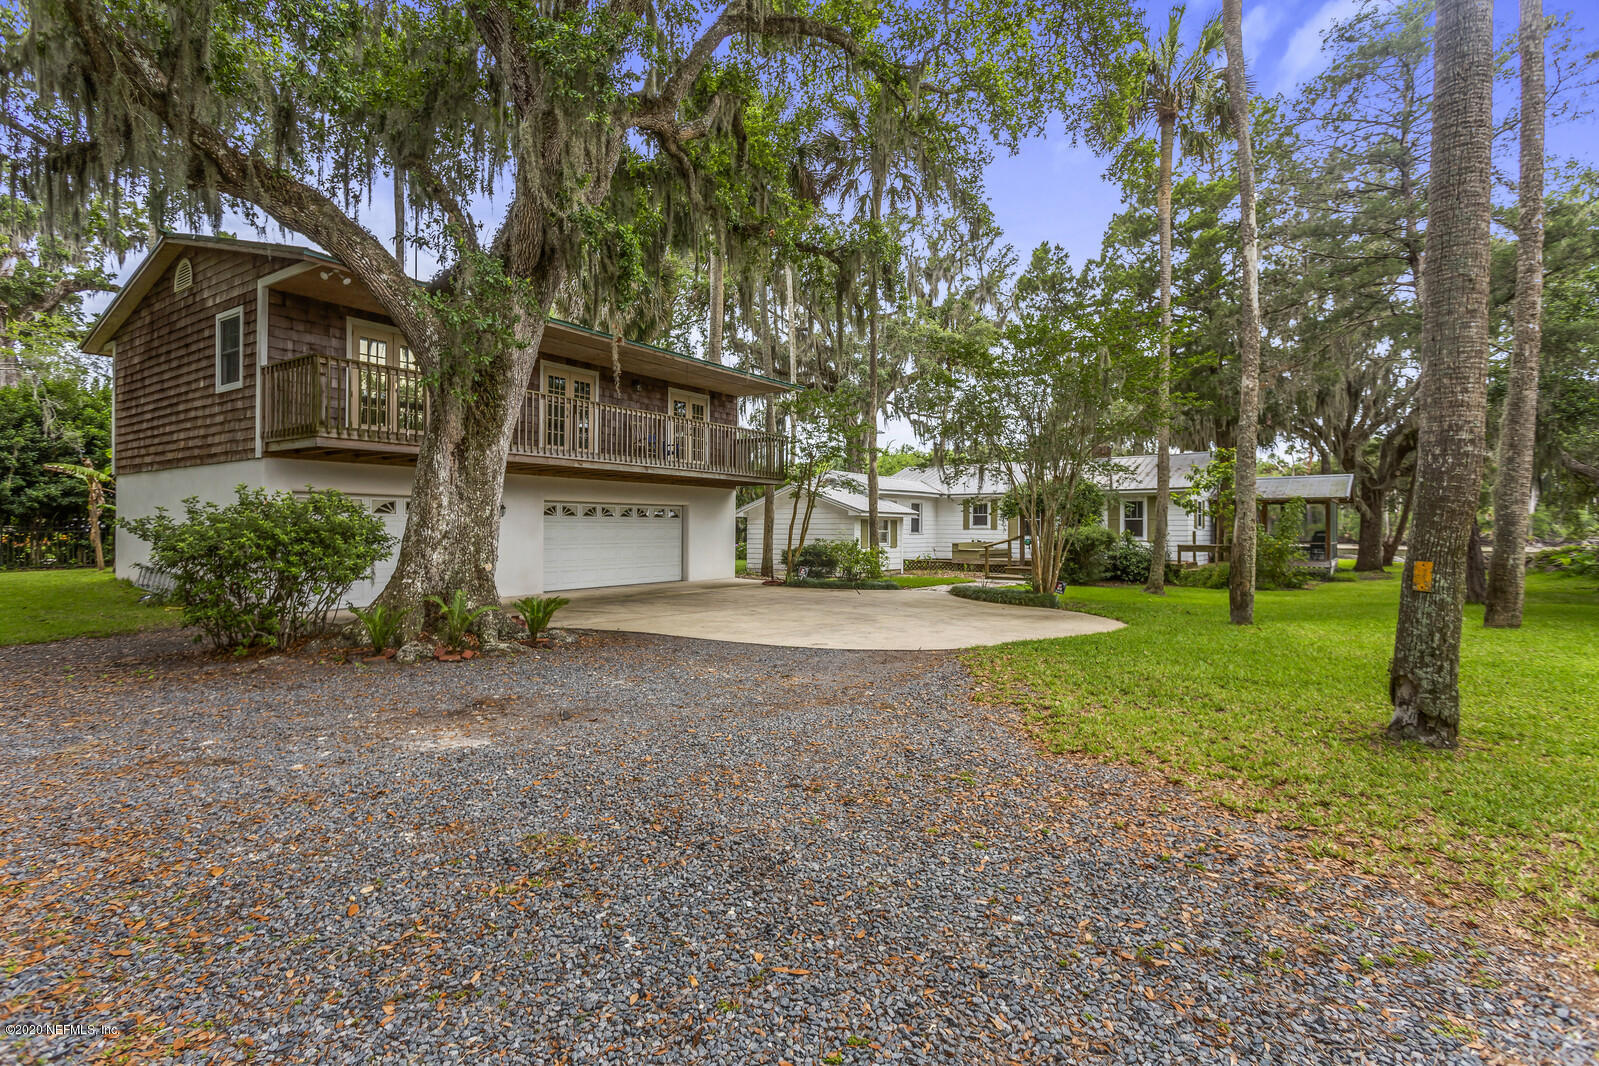 3 ROSCOE, PONTE VEDRA BEACH, FLORIDA 32082, 3 Bedrooms Bedrooms, ,3 BathroomsBathrooms,Residential,For sale,ROSCOE,1057506